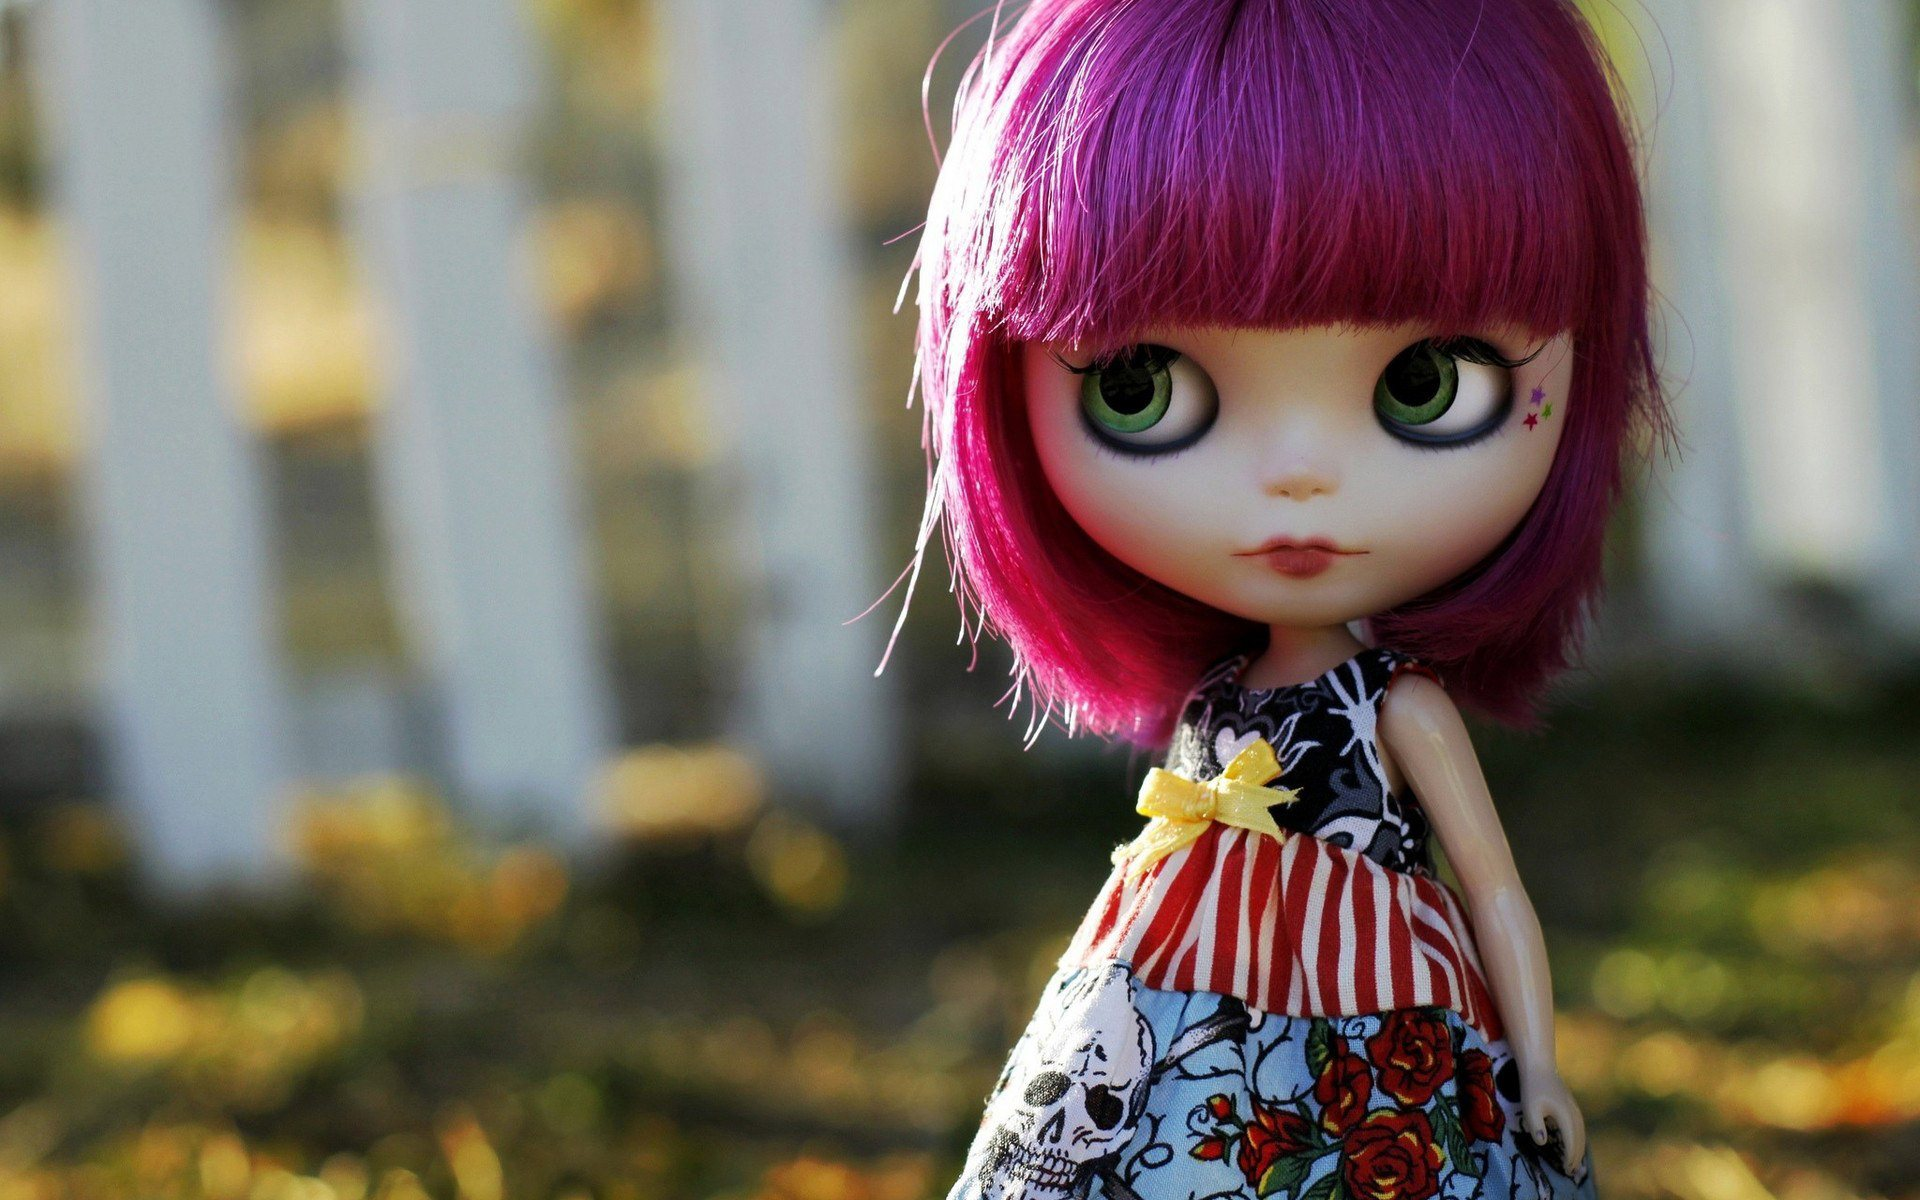 Cute-Doll-Wallpaper.jpg